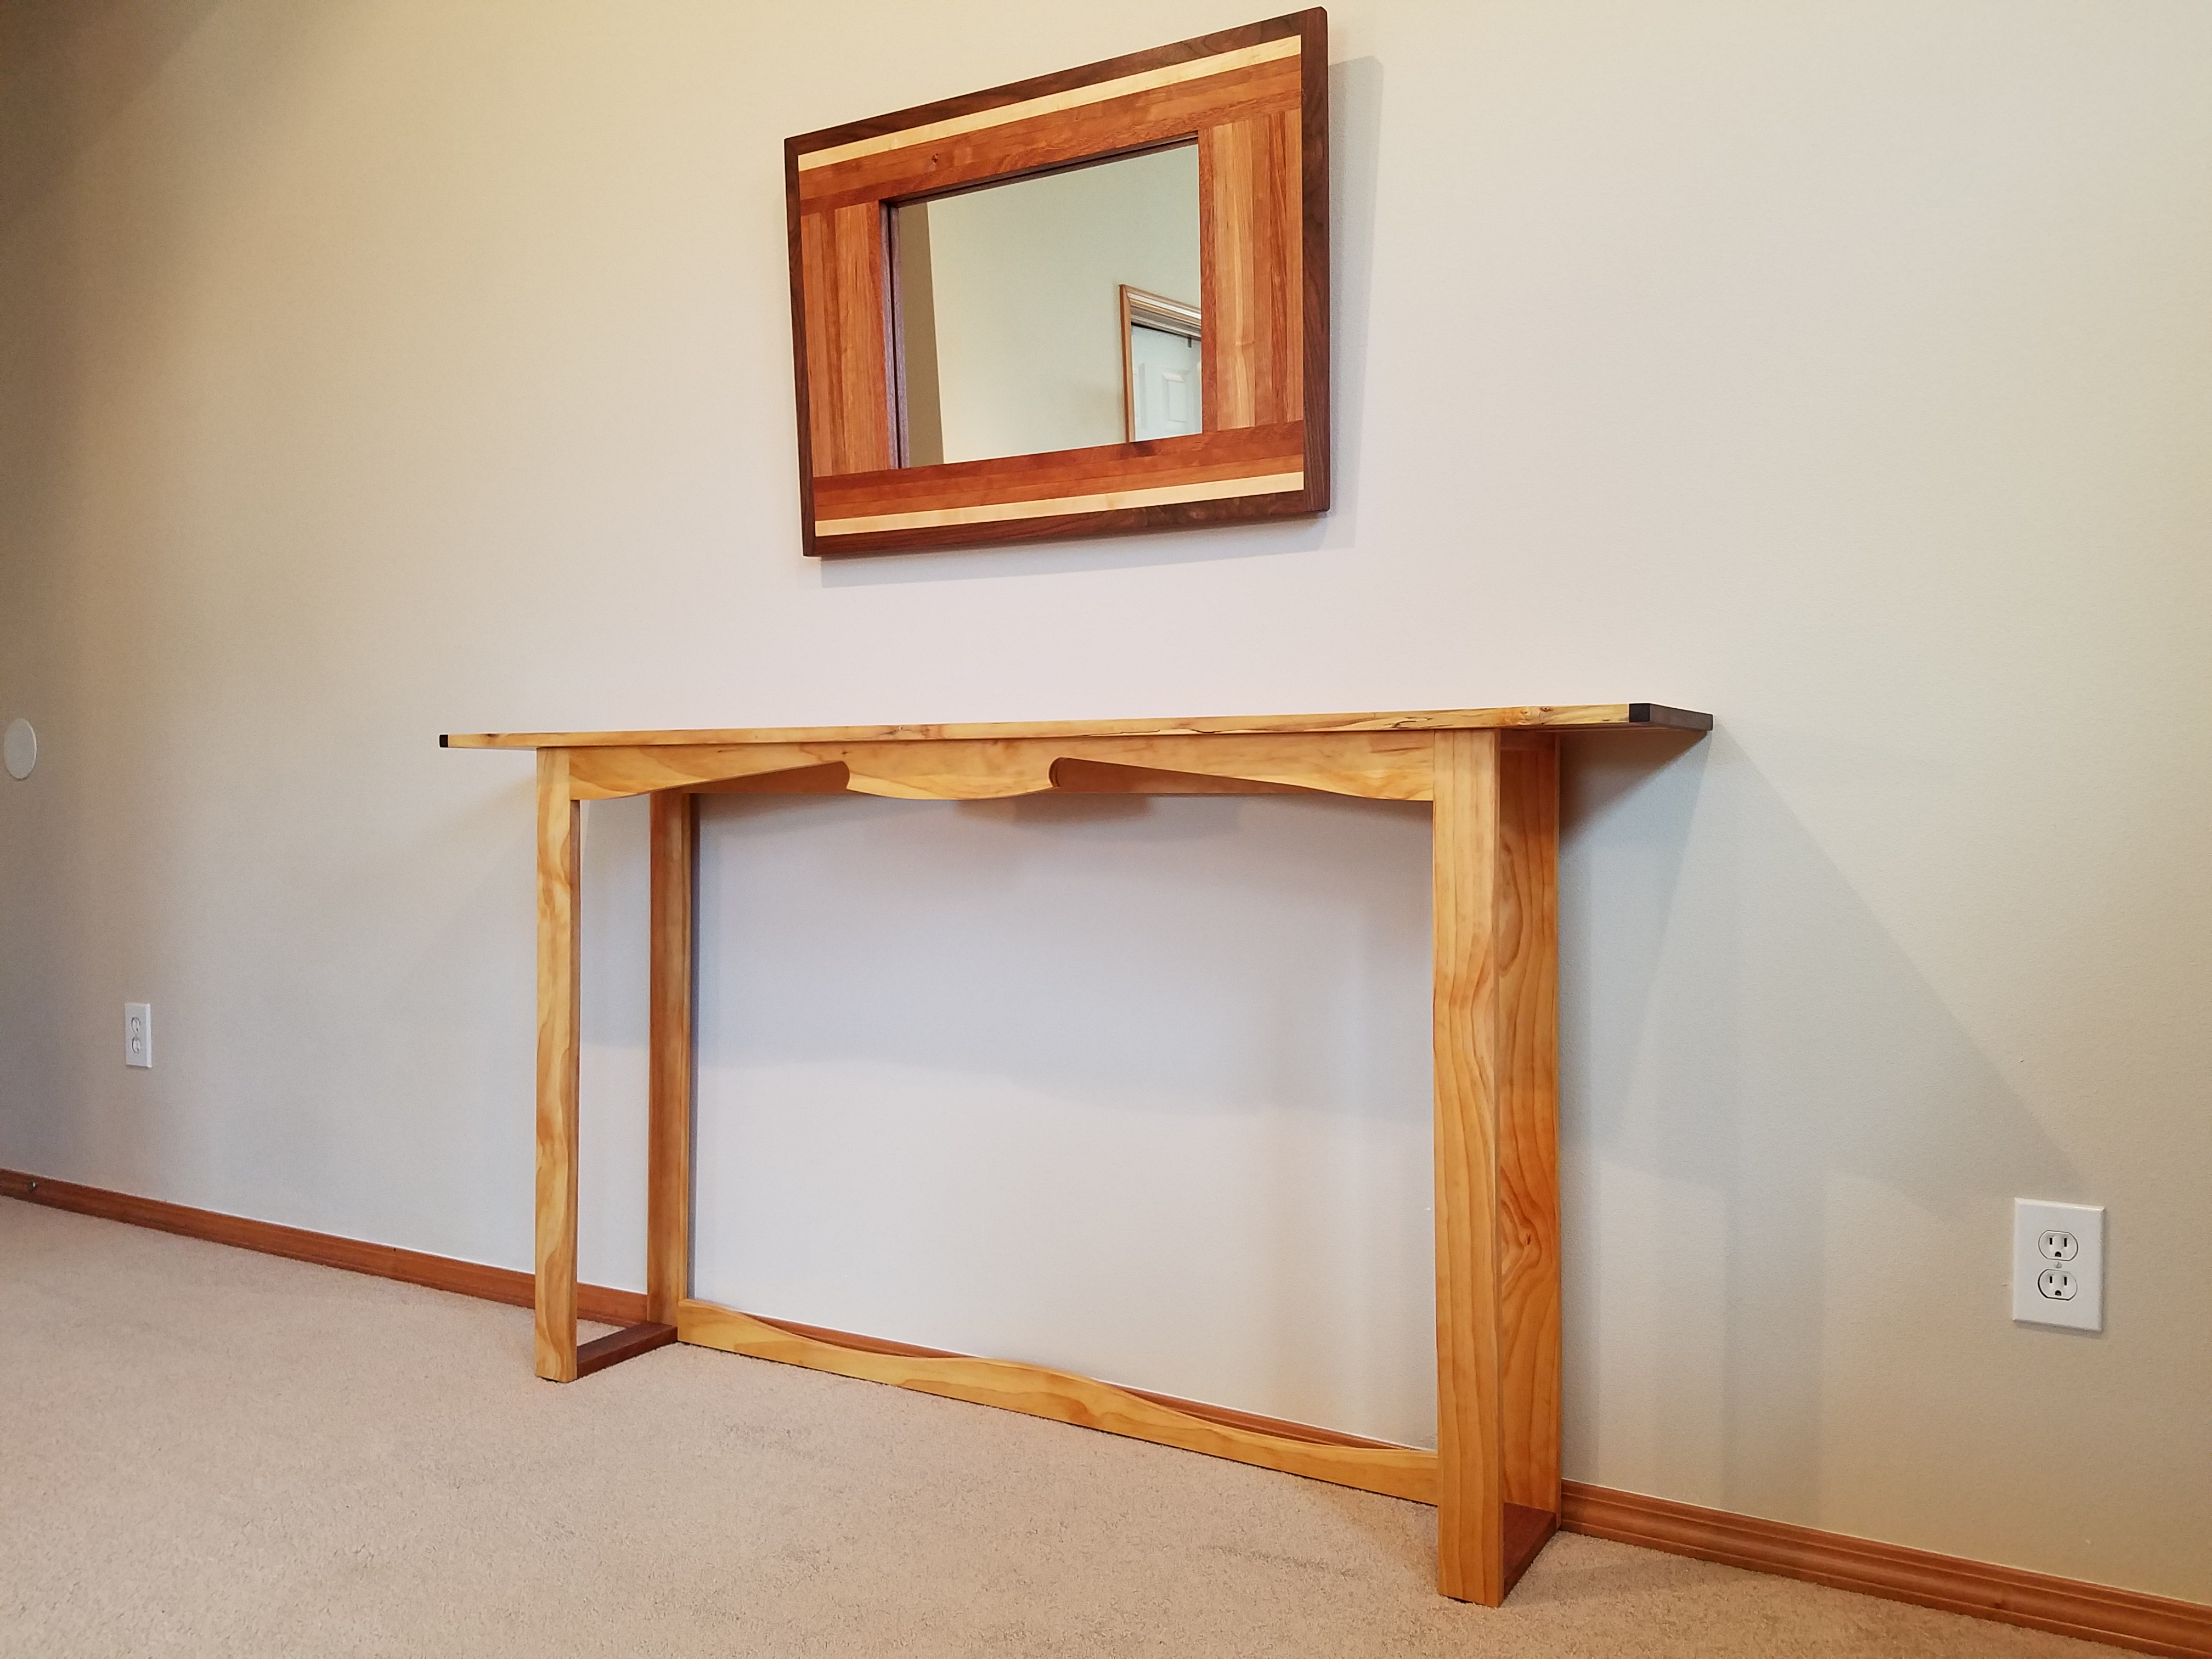 Wood Console Table With A Live Edge And Mirror — Handmade Natural Intended For Natural Wood Mirrored Media Console Tables (View 11 of 20)